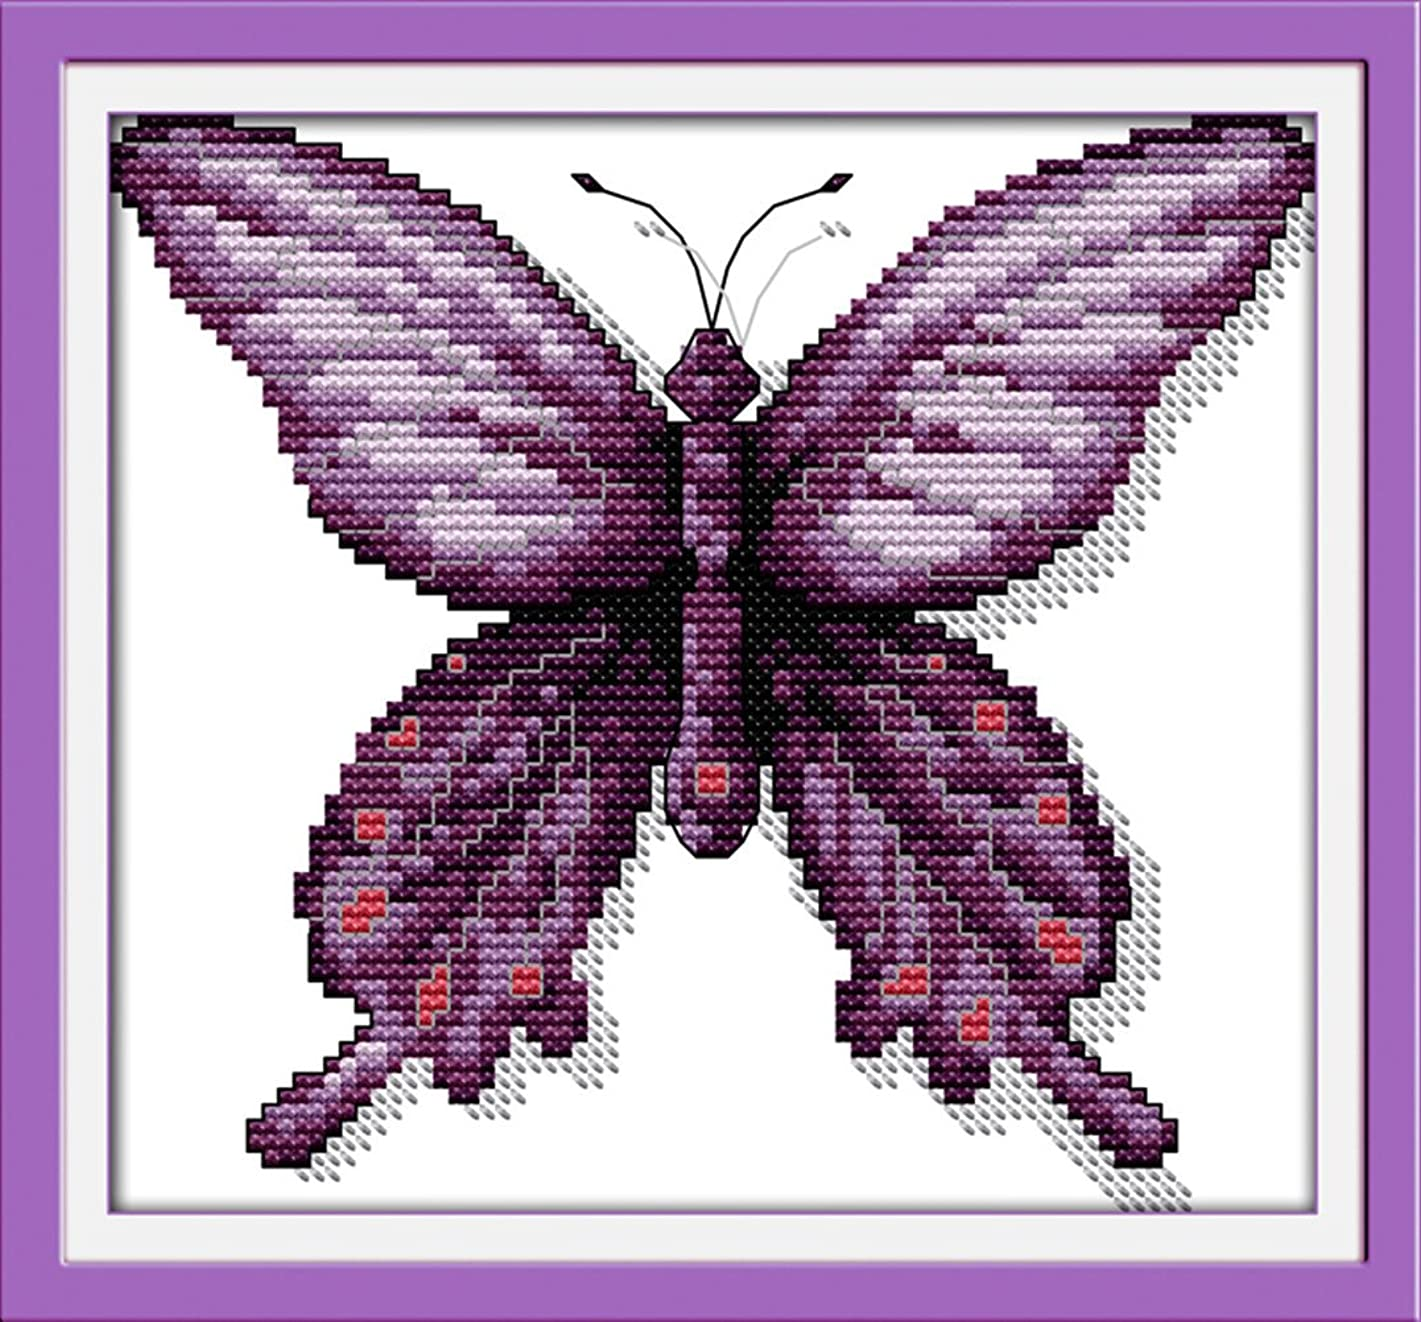 YEESAM ART New Cross Stitch Kits Advanced Patterns for Beginners Kids Adults - Purple Butterfly 11 CT Stamped 24×22 cm - DIY Needlework Wedding Christmas Gifts